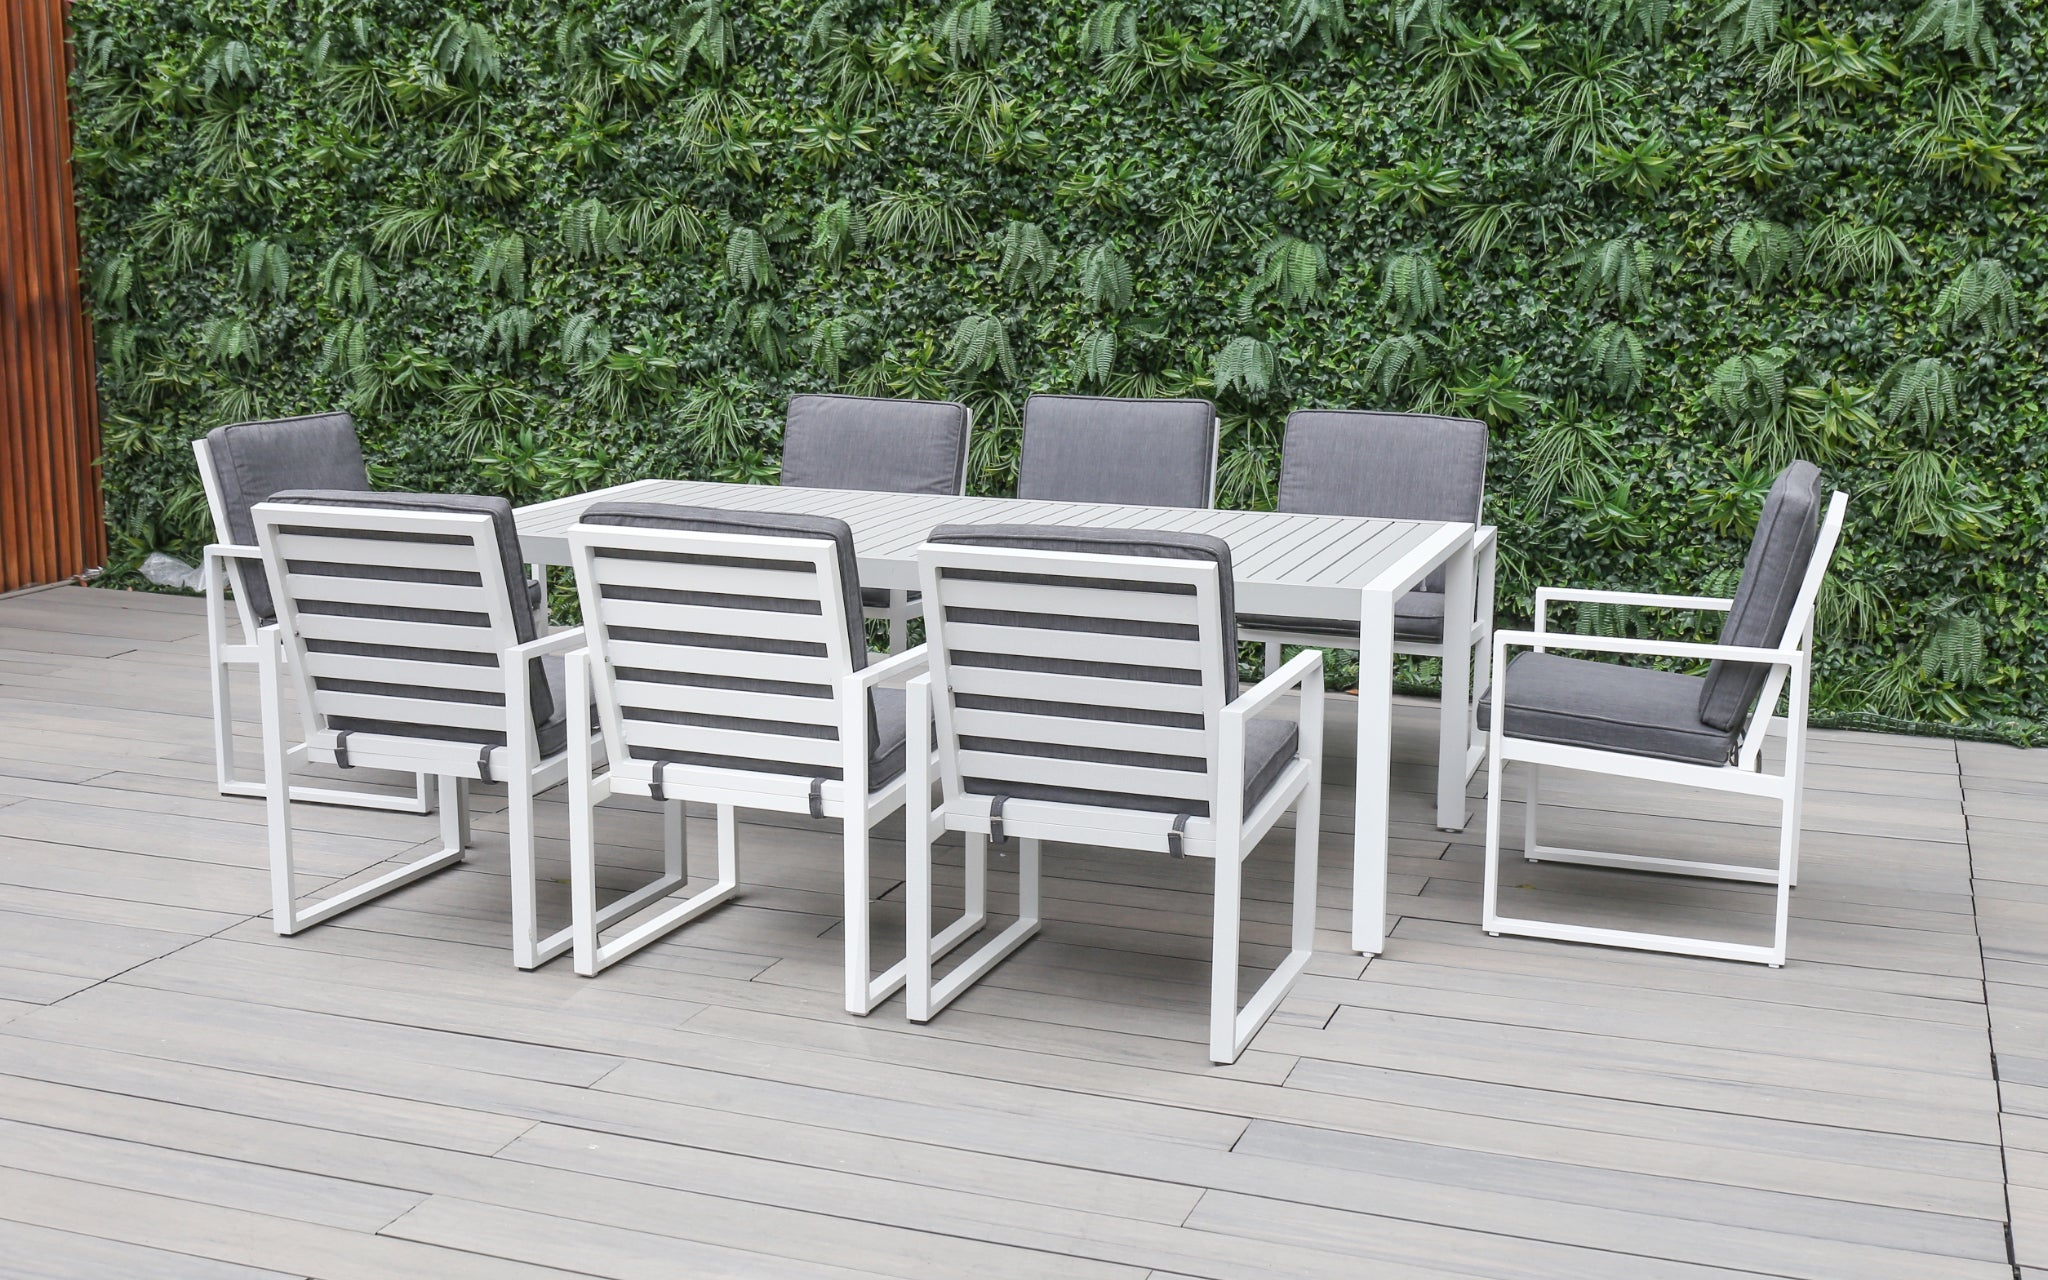 Melbourne S Best Value Outdoor Furniture Furnitureokay